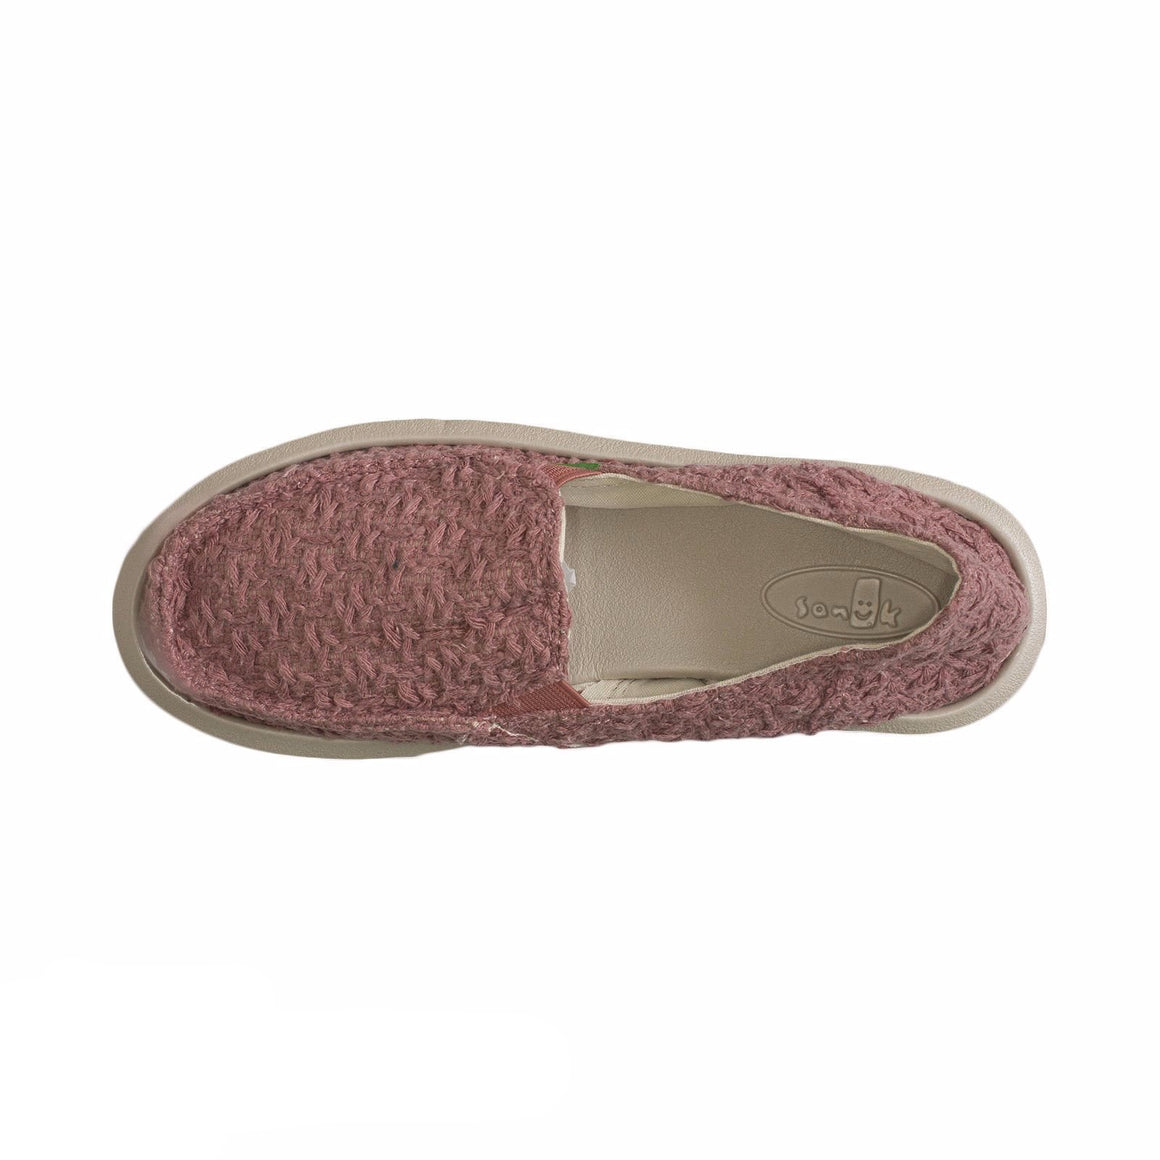 Sanuk Donna Knit Stitch Rose Shoes